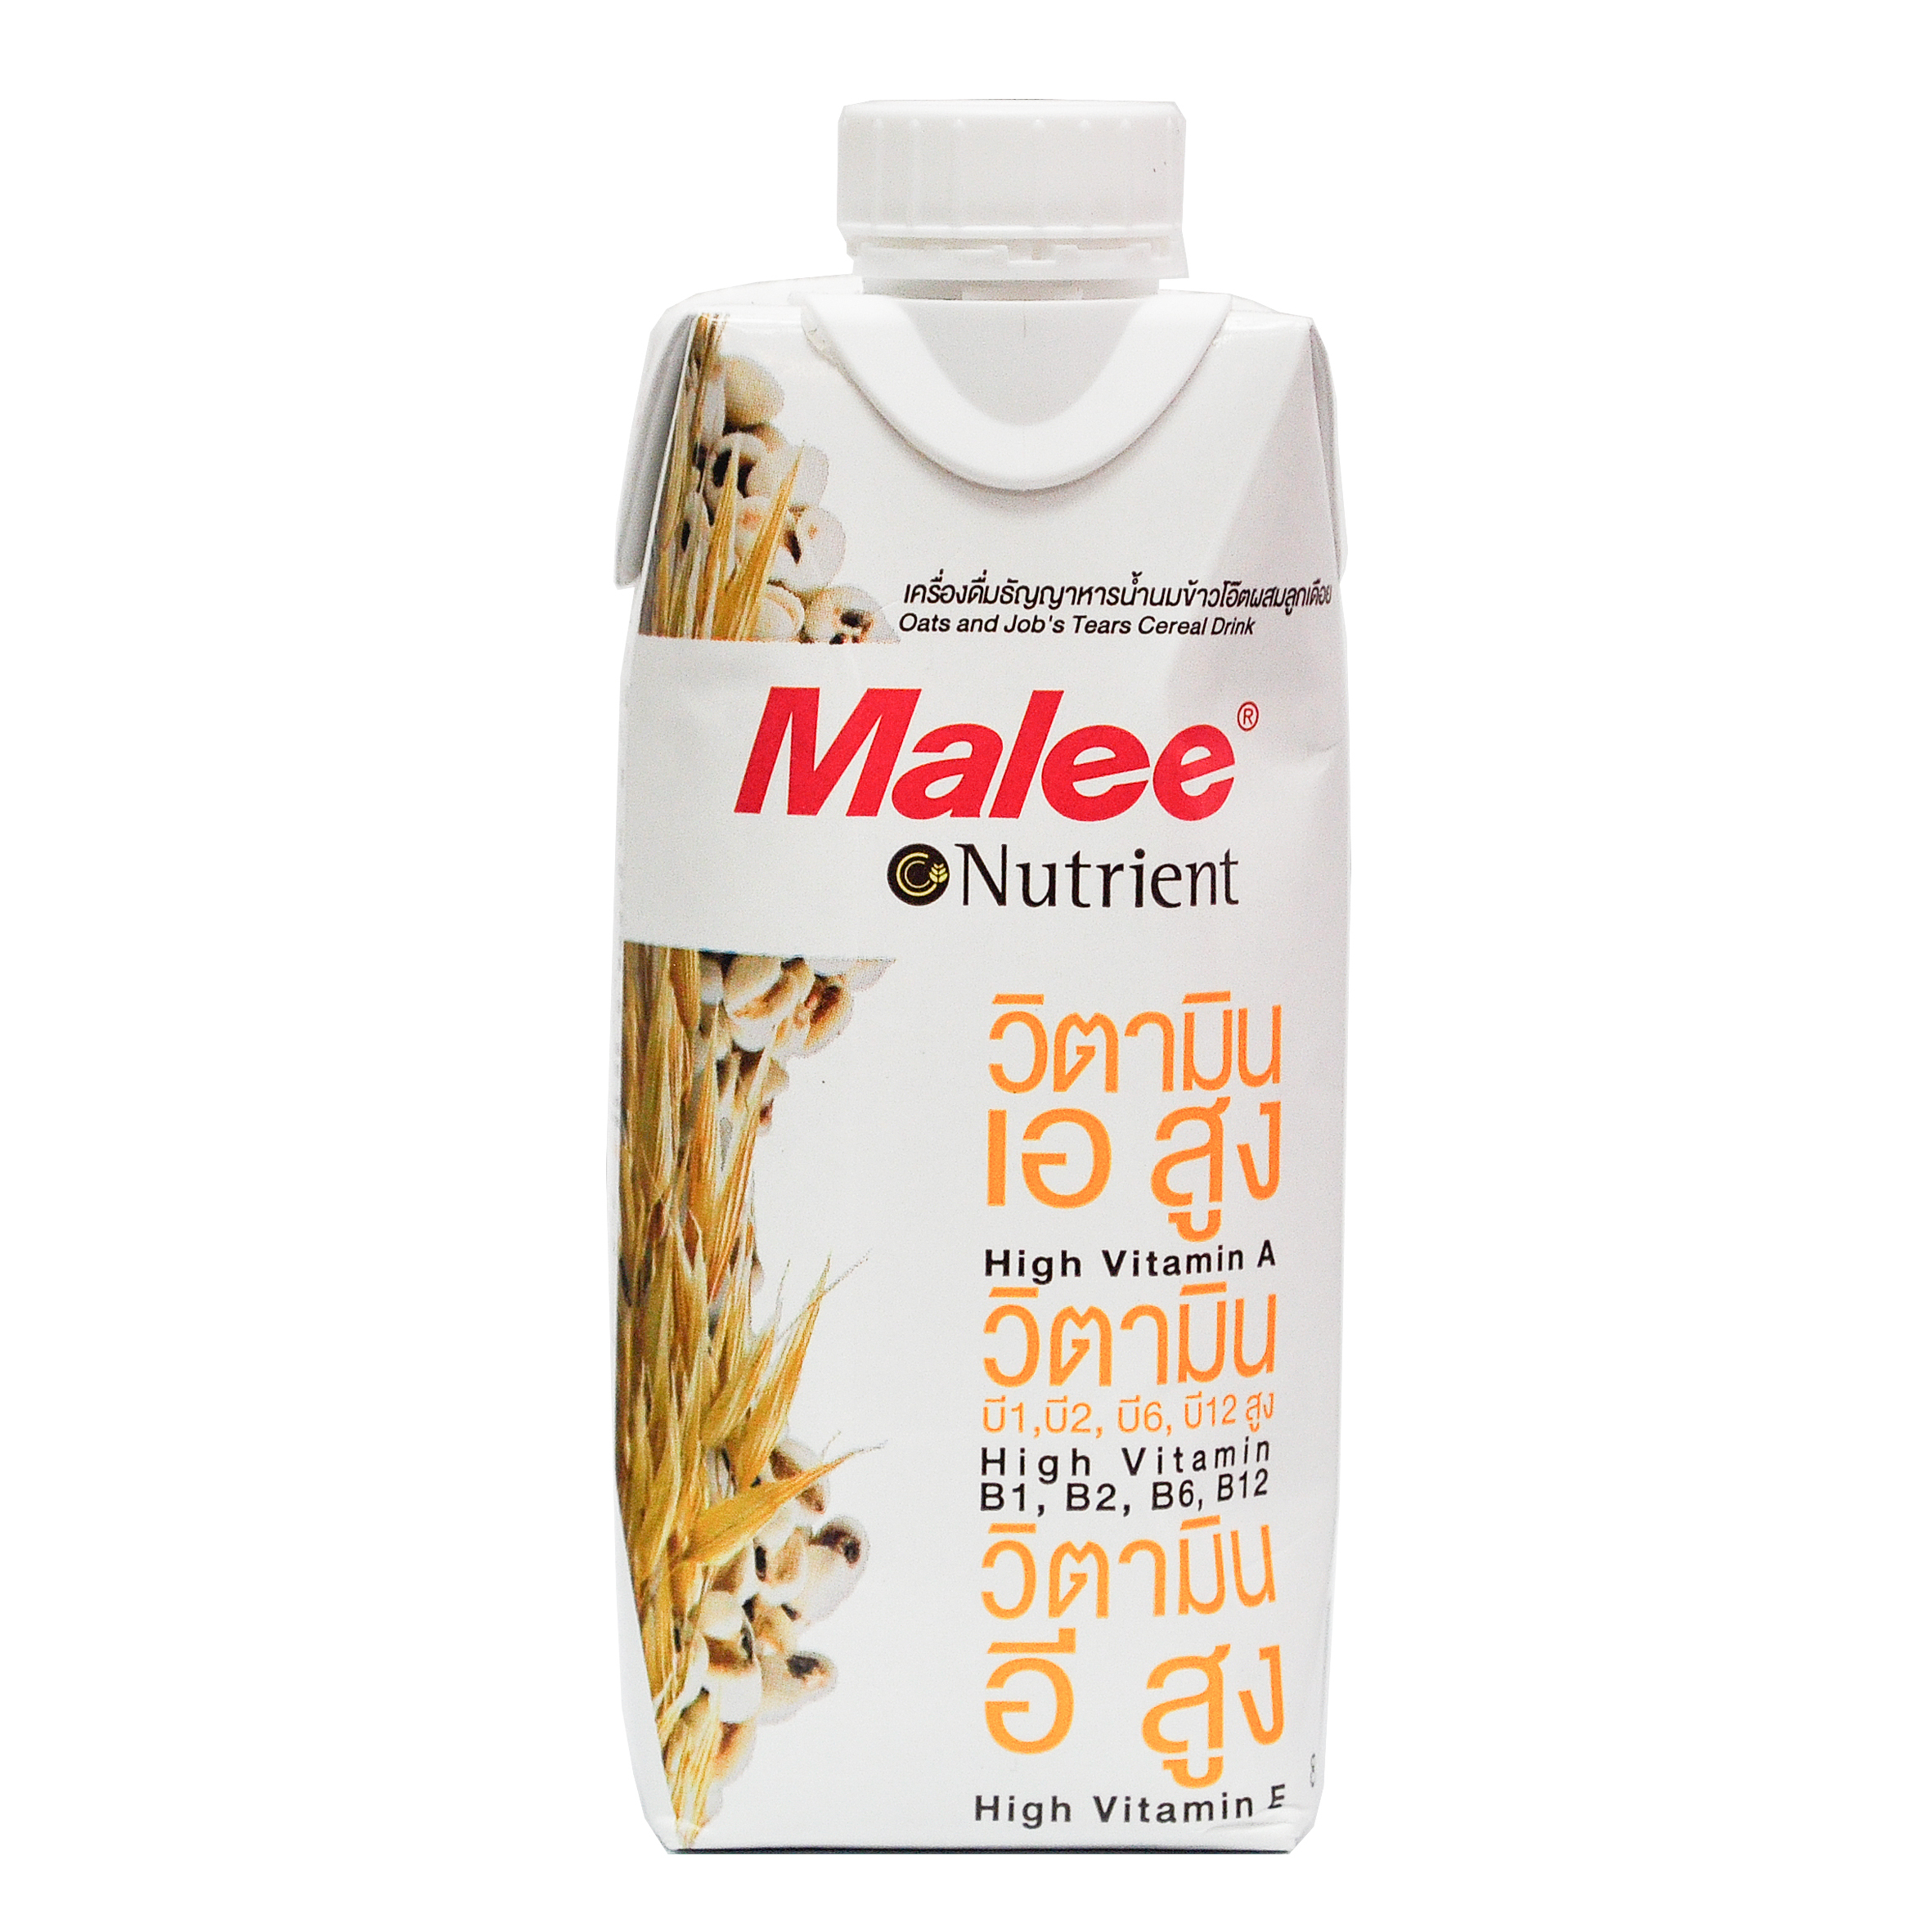 Malee Nutrient Brand Oats and Jobs Tears Cereal Drinks Back Front.jpg